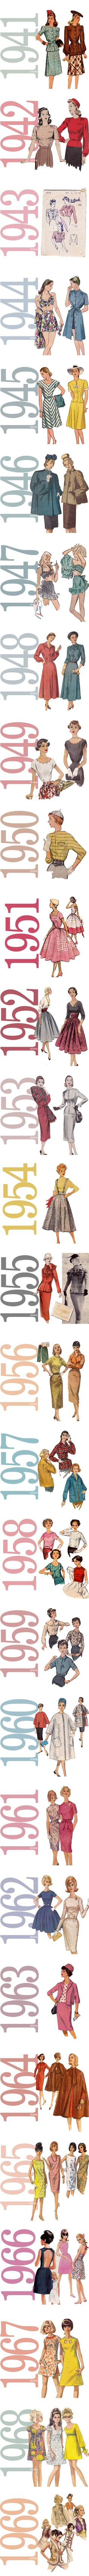 Vintage Pattern Timeline -- Fashion throughout the years